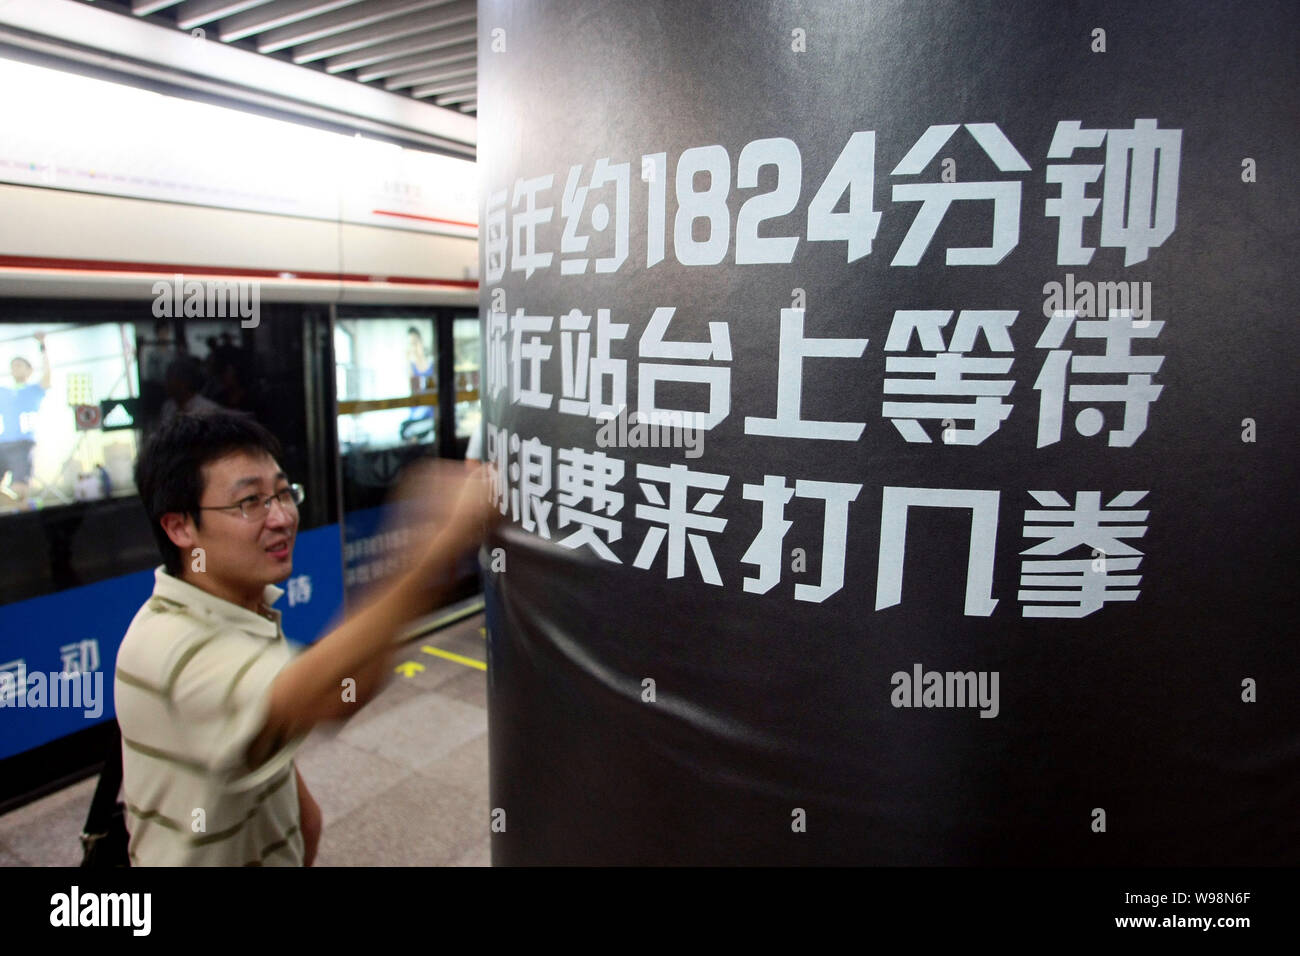 A Passenger Punches An Advertisement For Adidas In The Shape Of A Punching Bag At The Xujiahui Subway Station Of The Shanghai Metro Line 1 In Shanghai Stock Photo Alamy